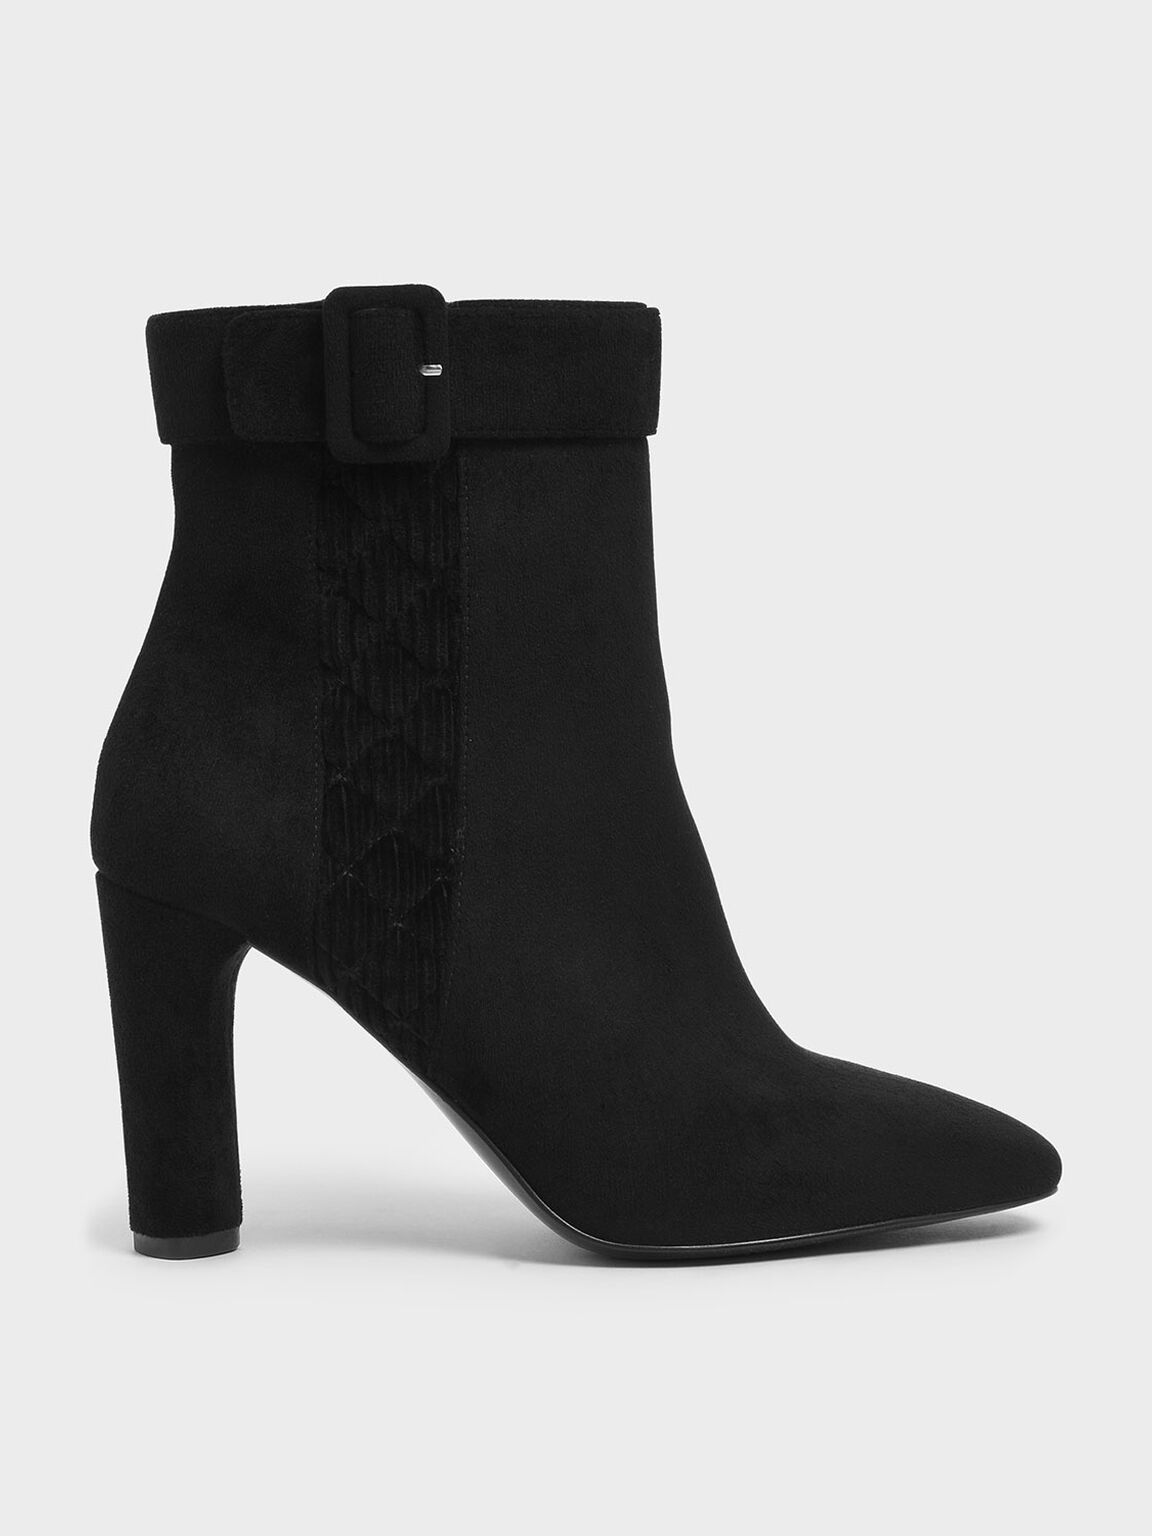 Buckle Strap Cylindrical Heel Corduroy Ankle Boots, Black Textured, hi-res